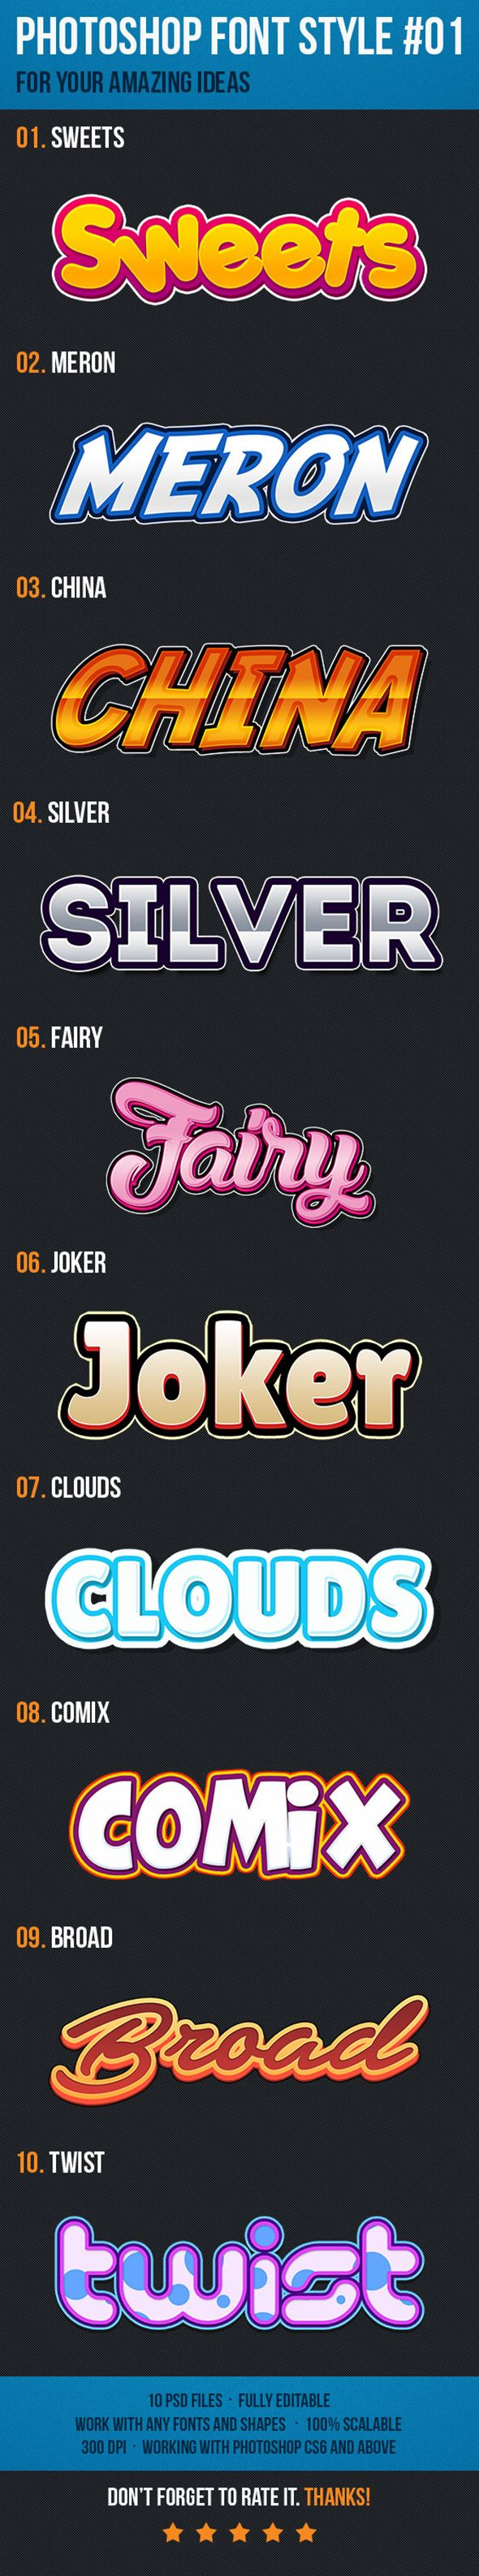 10 Text Style Effects for Game Logo #01 Download for free this month!